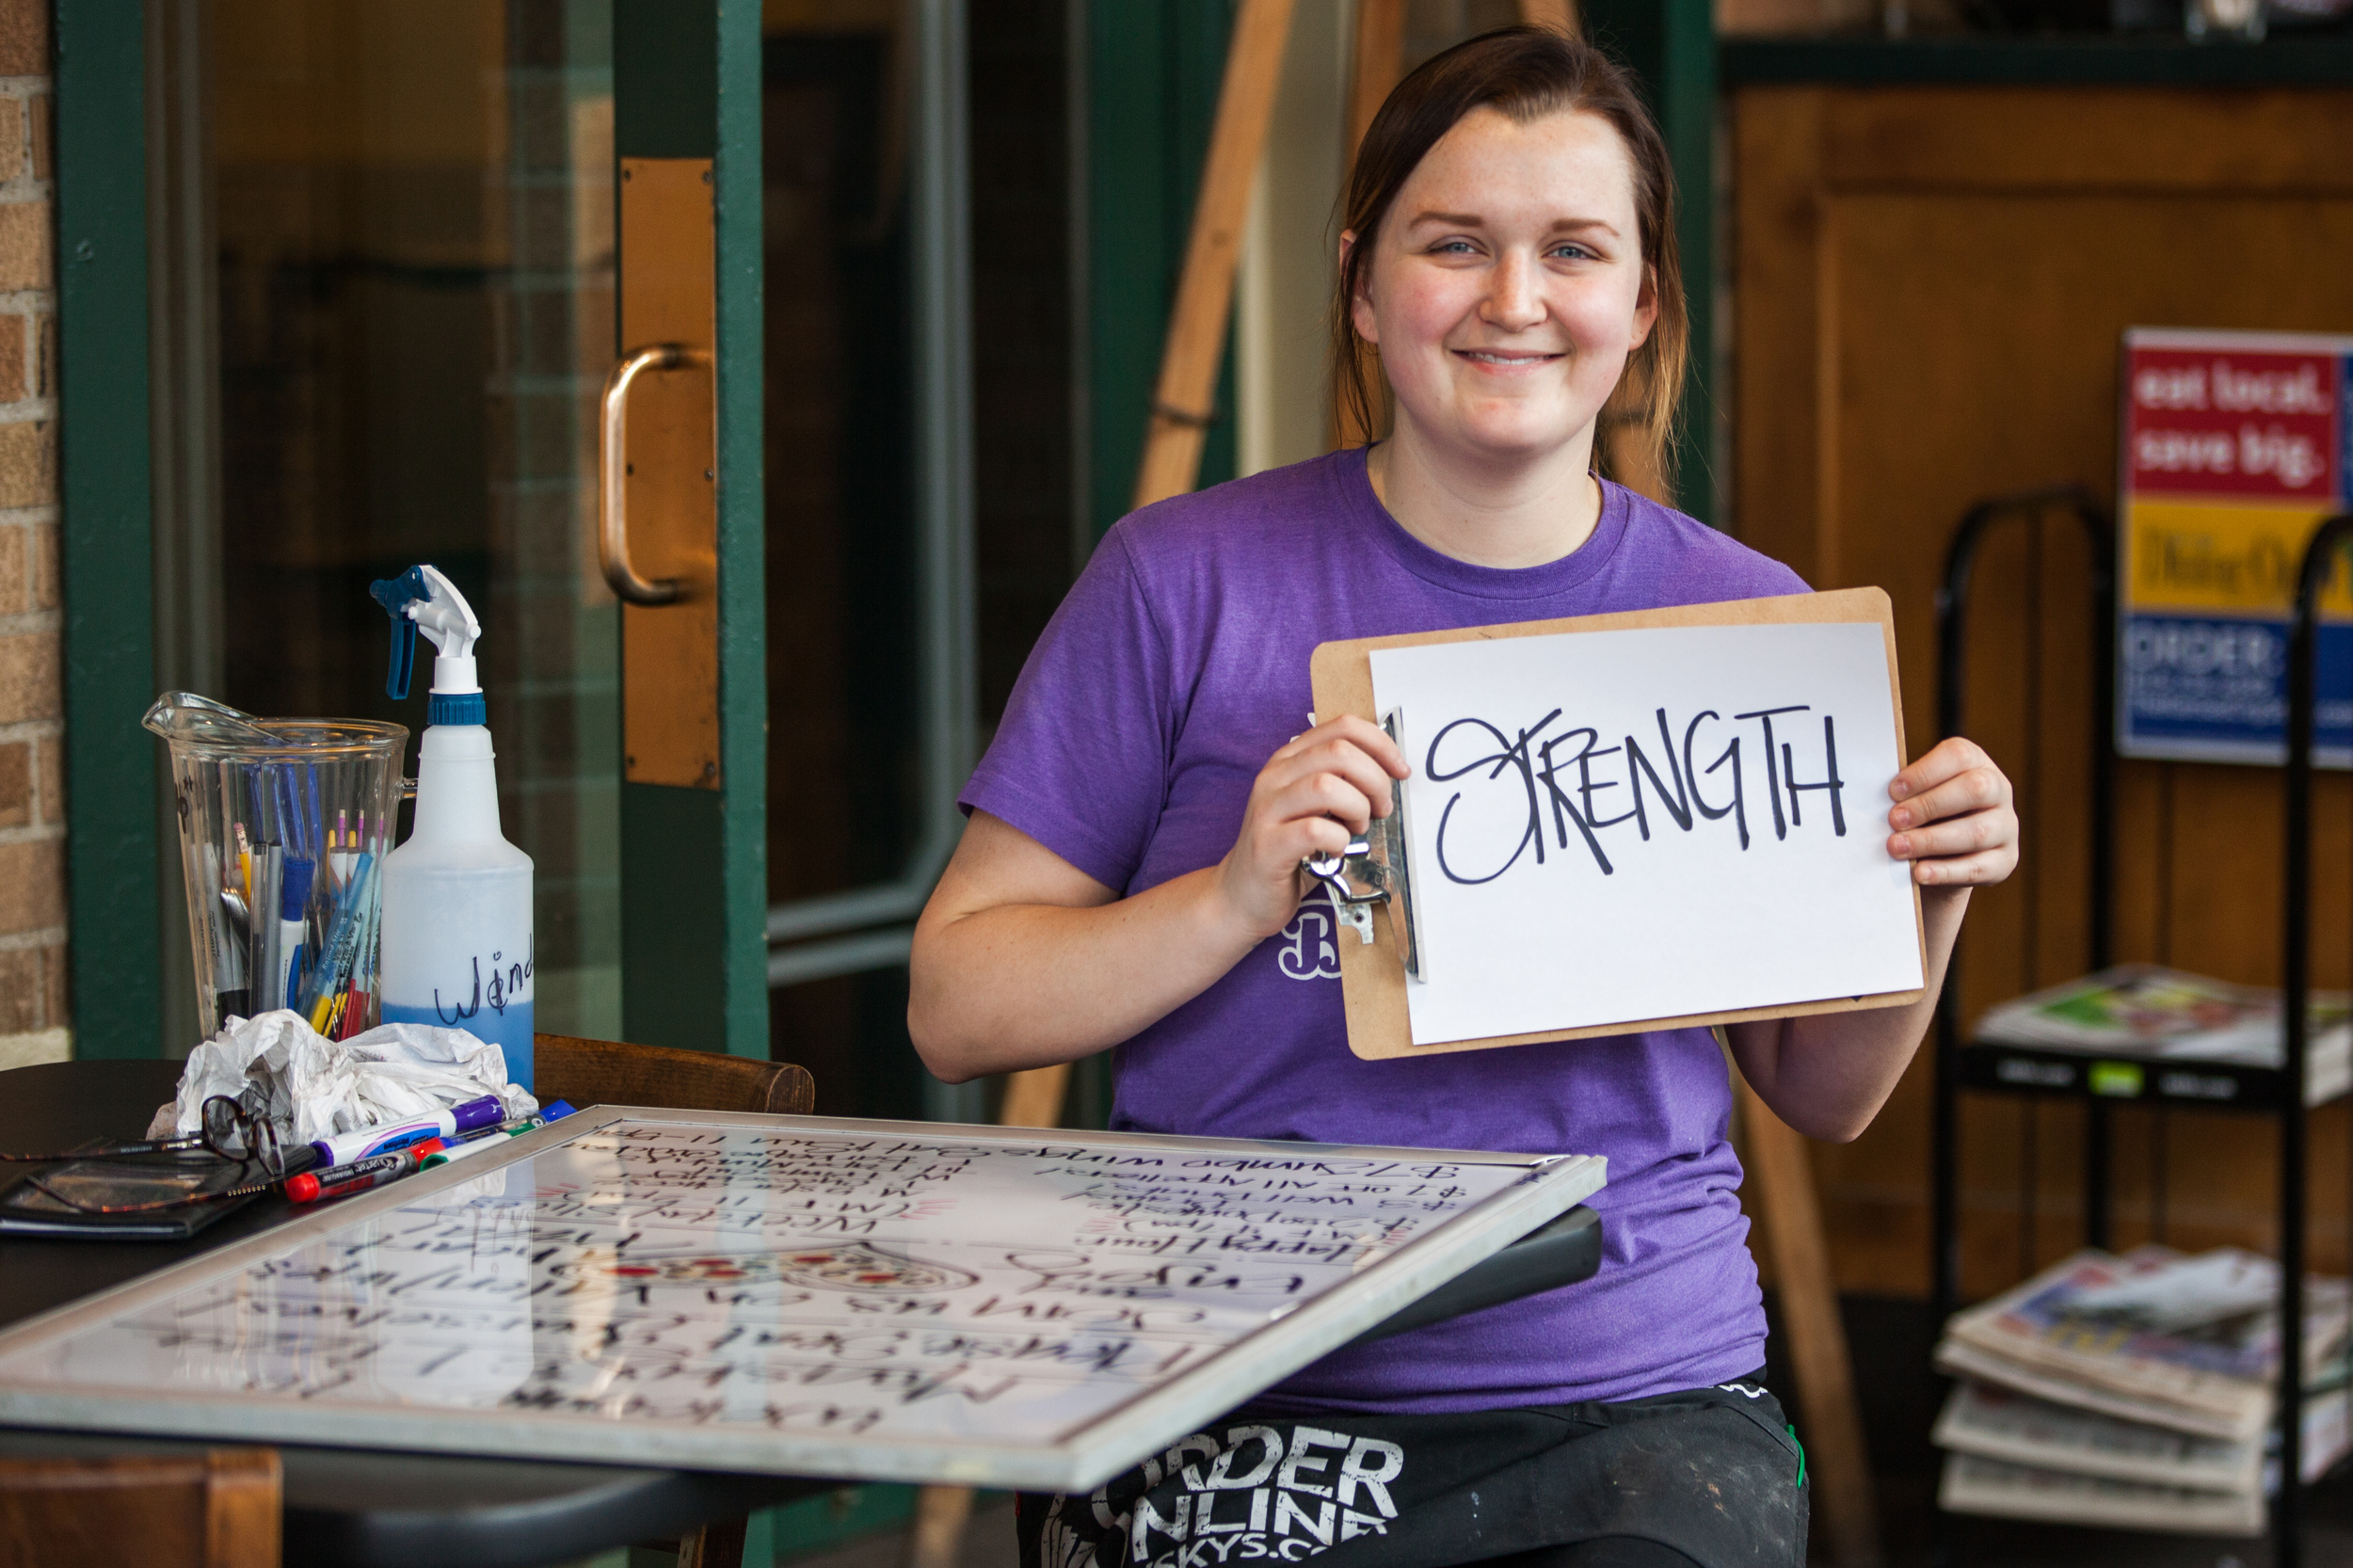 Young woman holding a sign saying strength.